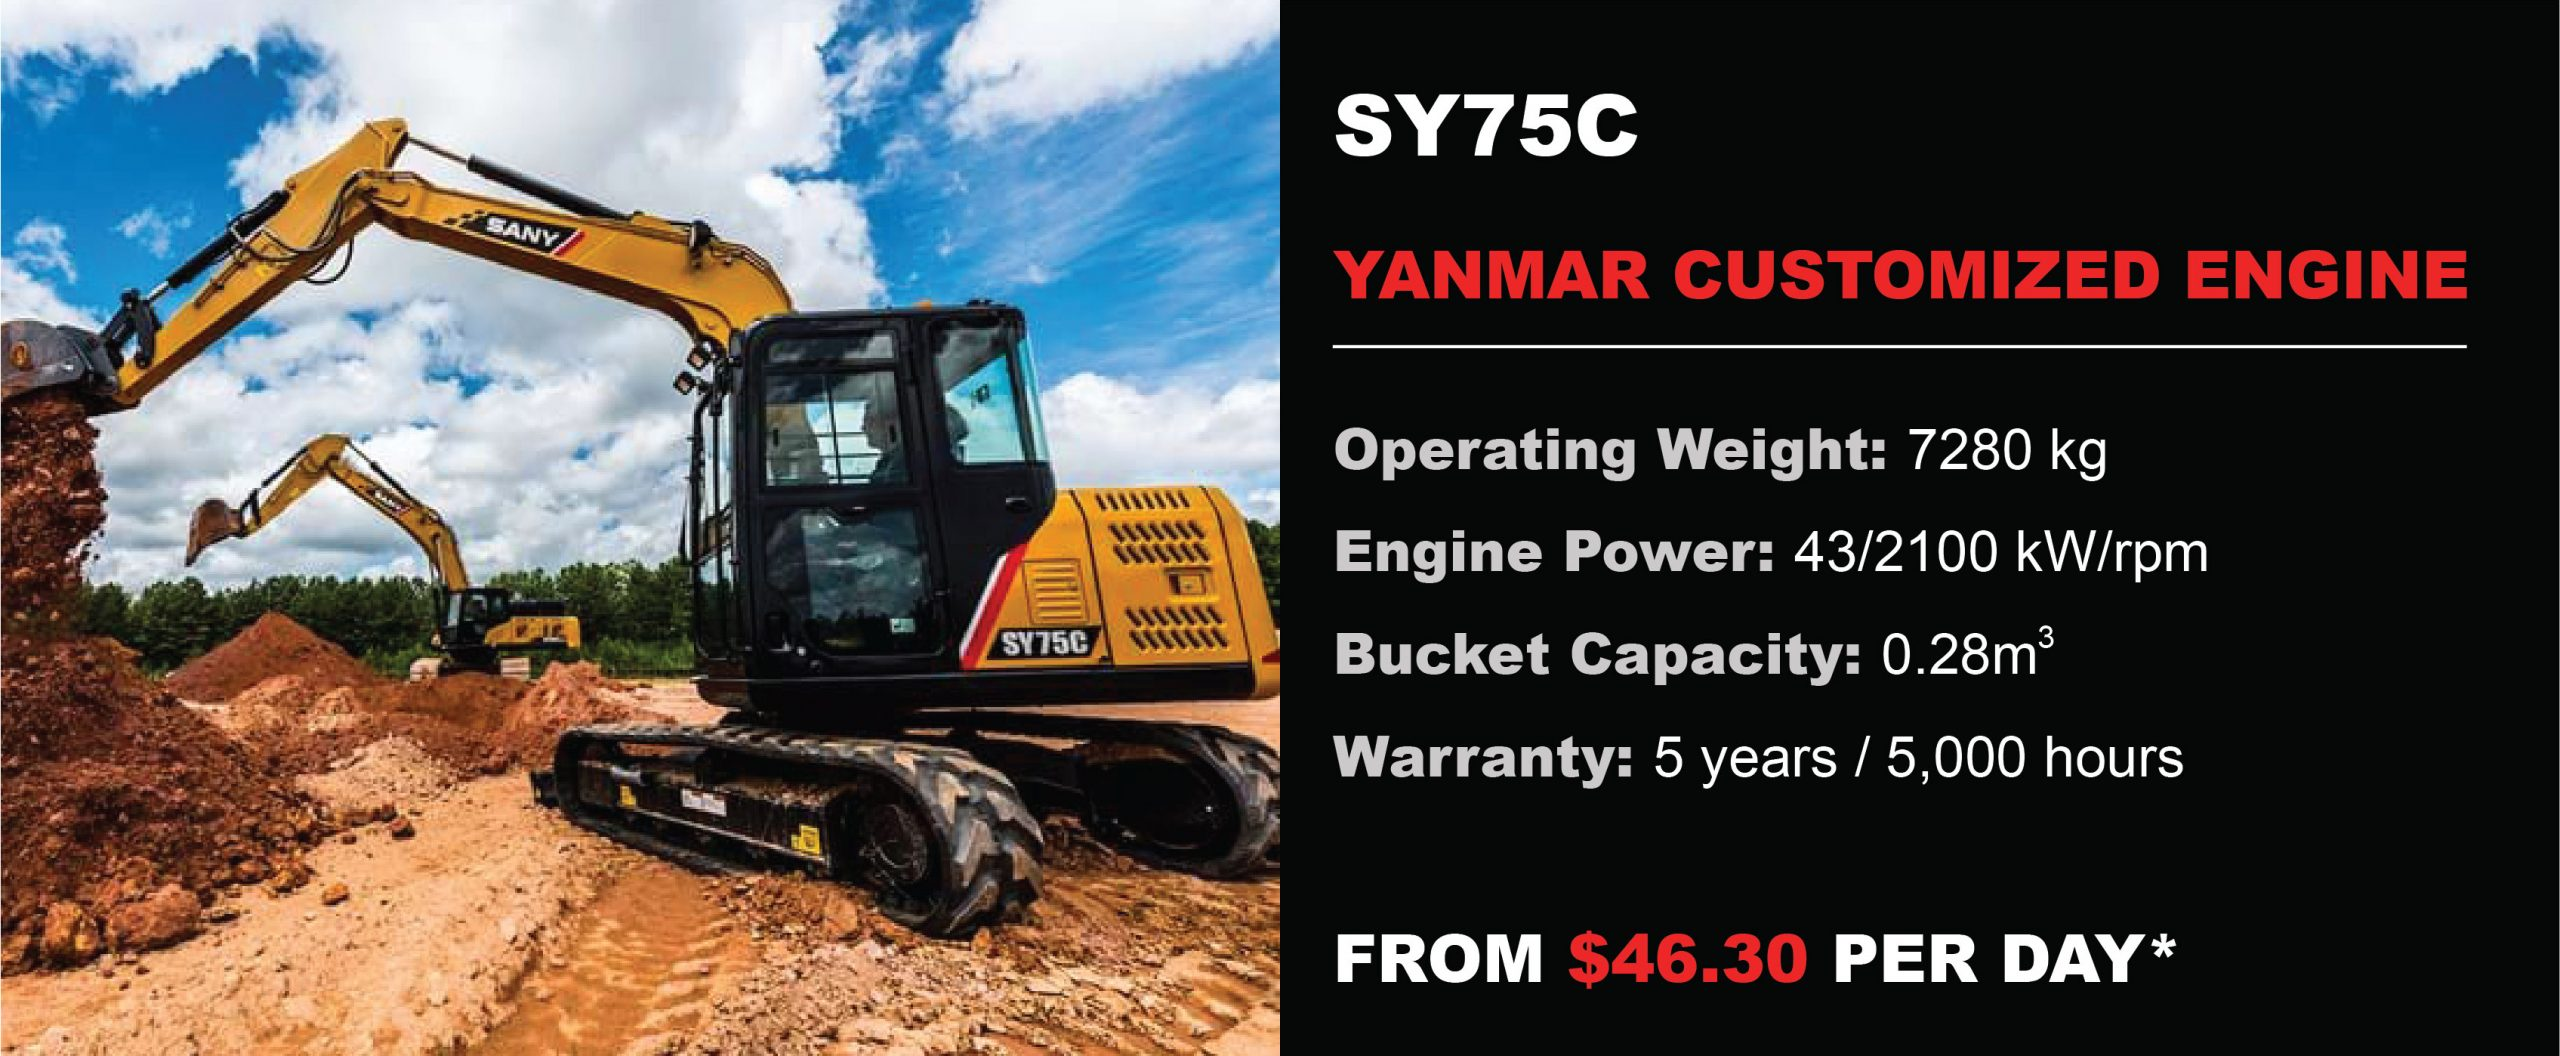 Sany excavator for sale Perth SY75C